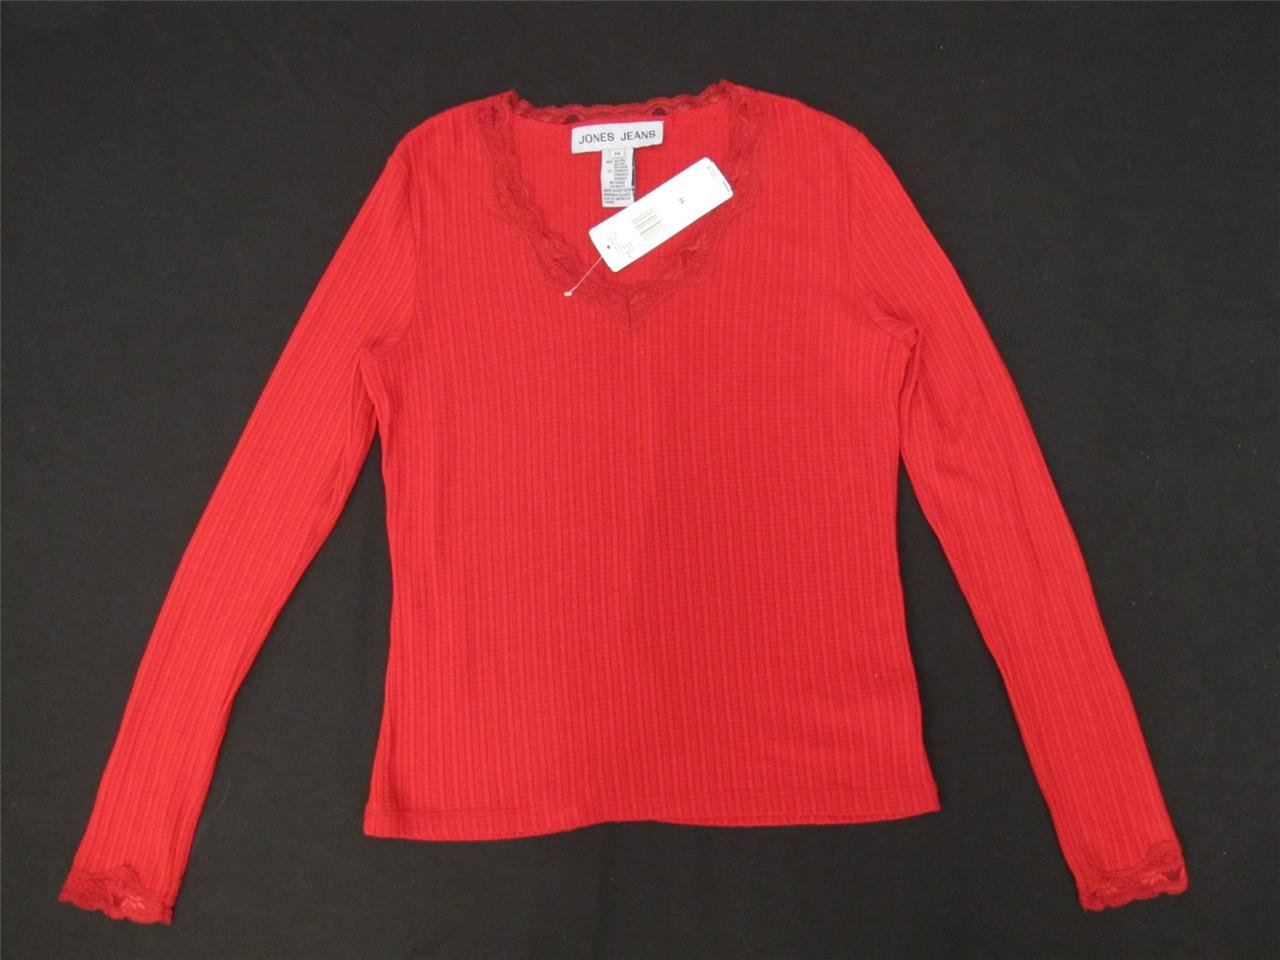 JONES JEANS RED V NECK LACE TRIM KNIT SHIRT SIZE MEDIUM